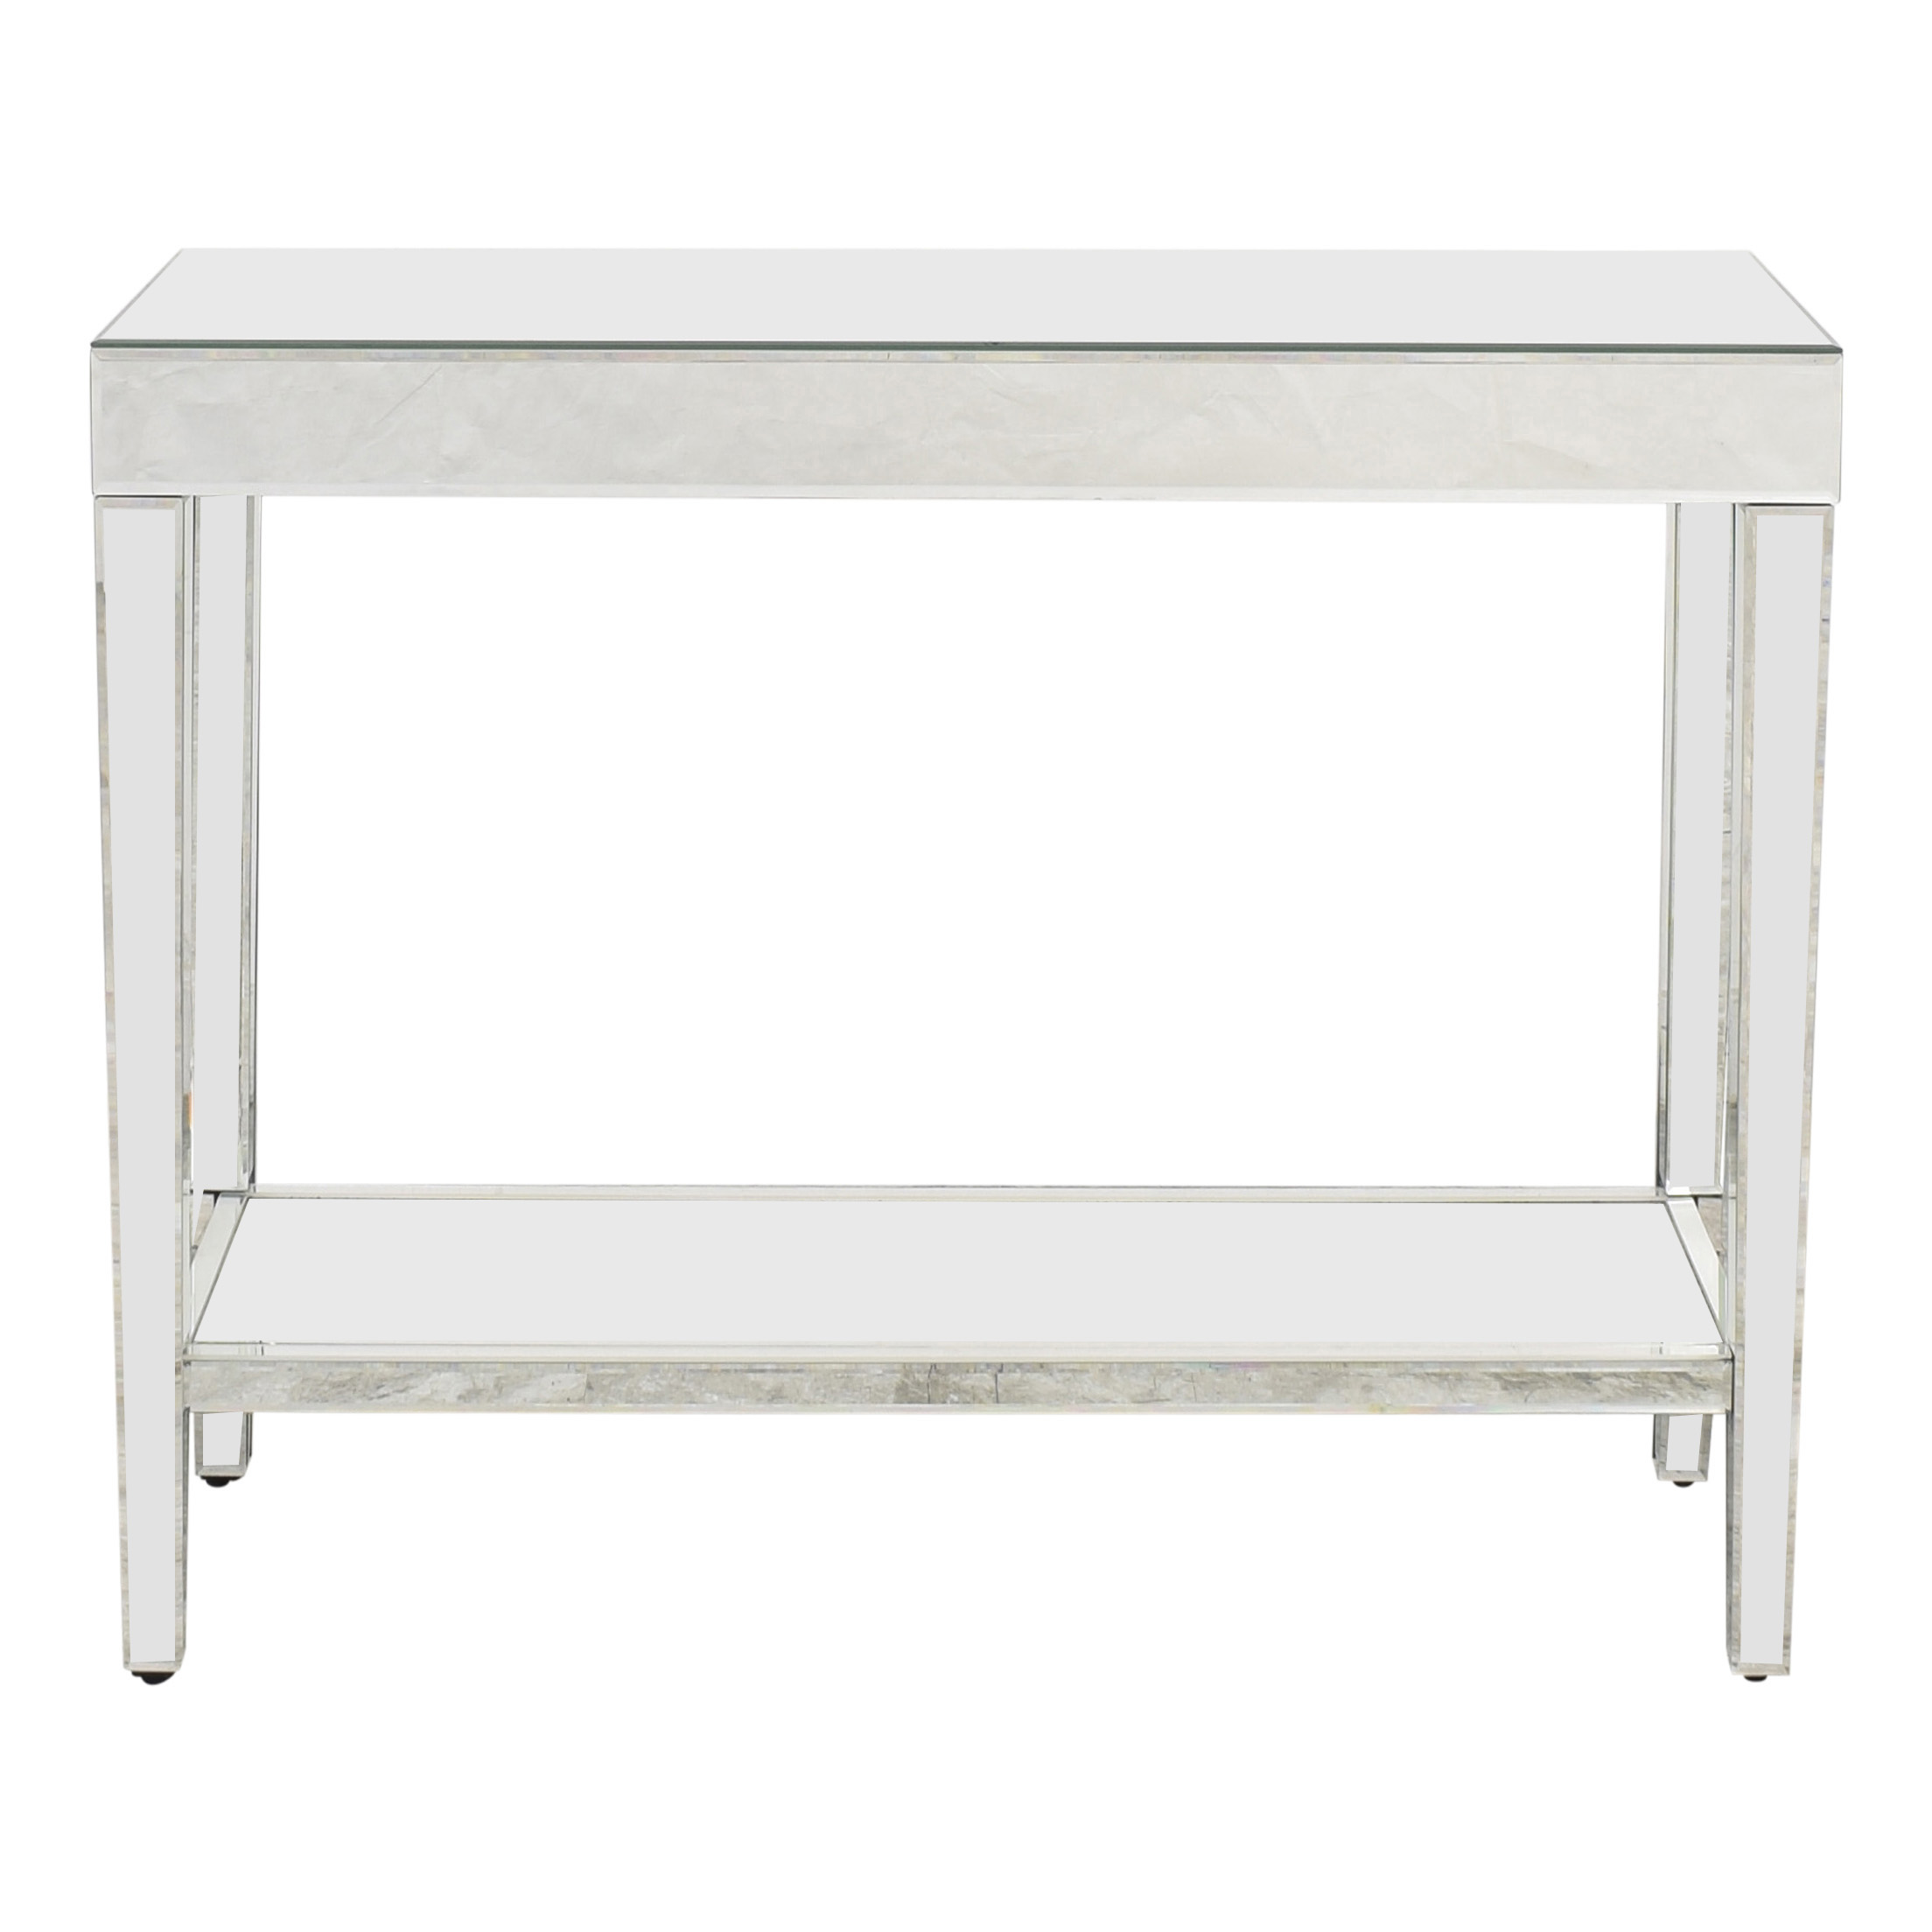 Howard Elliot Collection Howard Elliott Orion Mirrored Console Table With Shelf ct